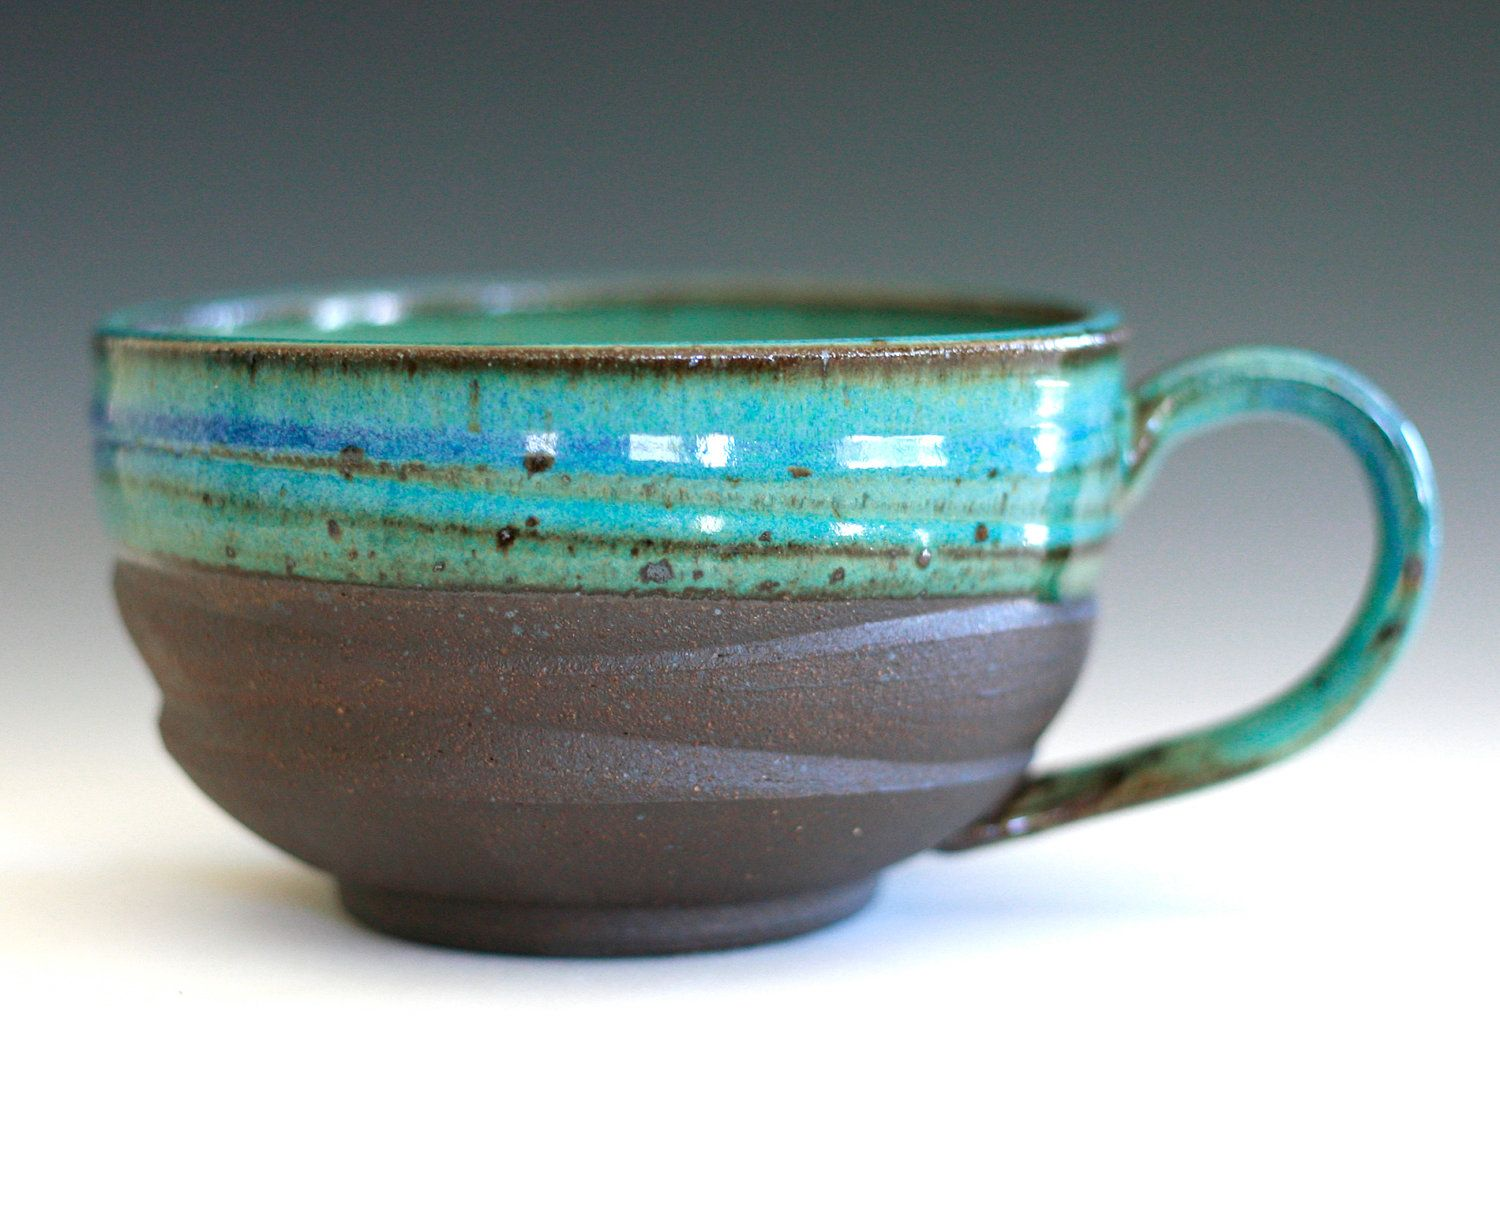 Extra Large Coffee Mug Holds 26 Oz Cuccino Cups Or Soup Bowls 25 00 Via Etsy